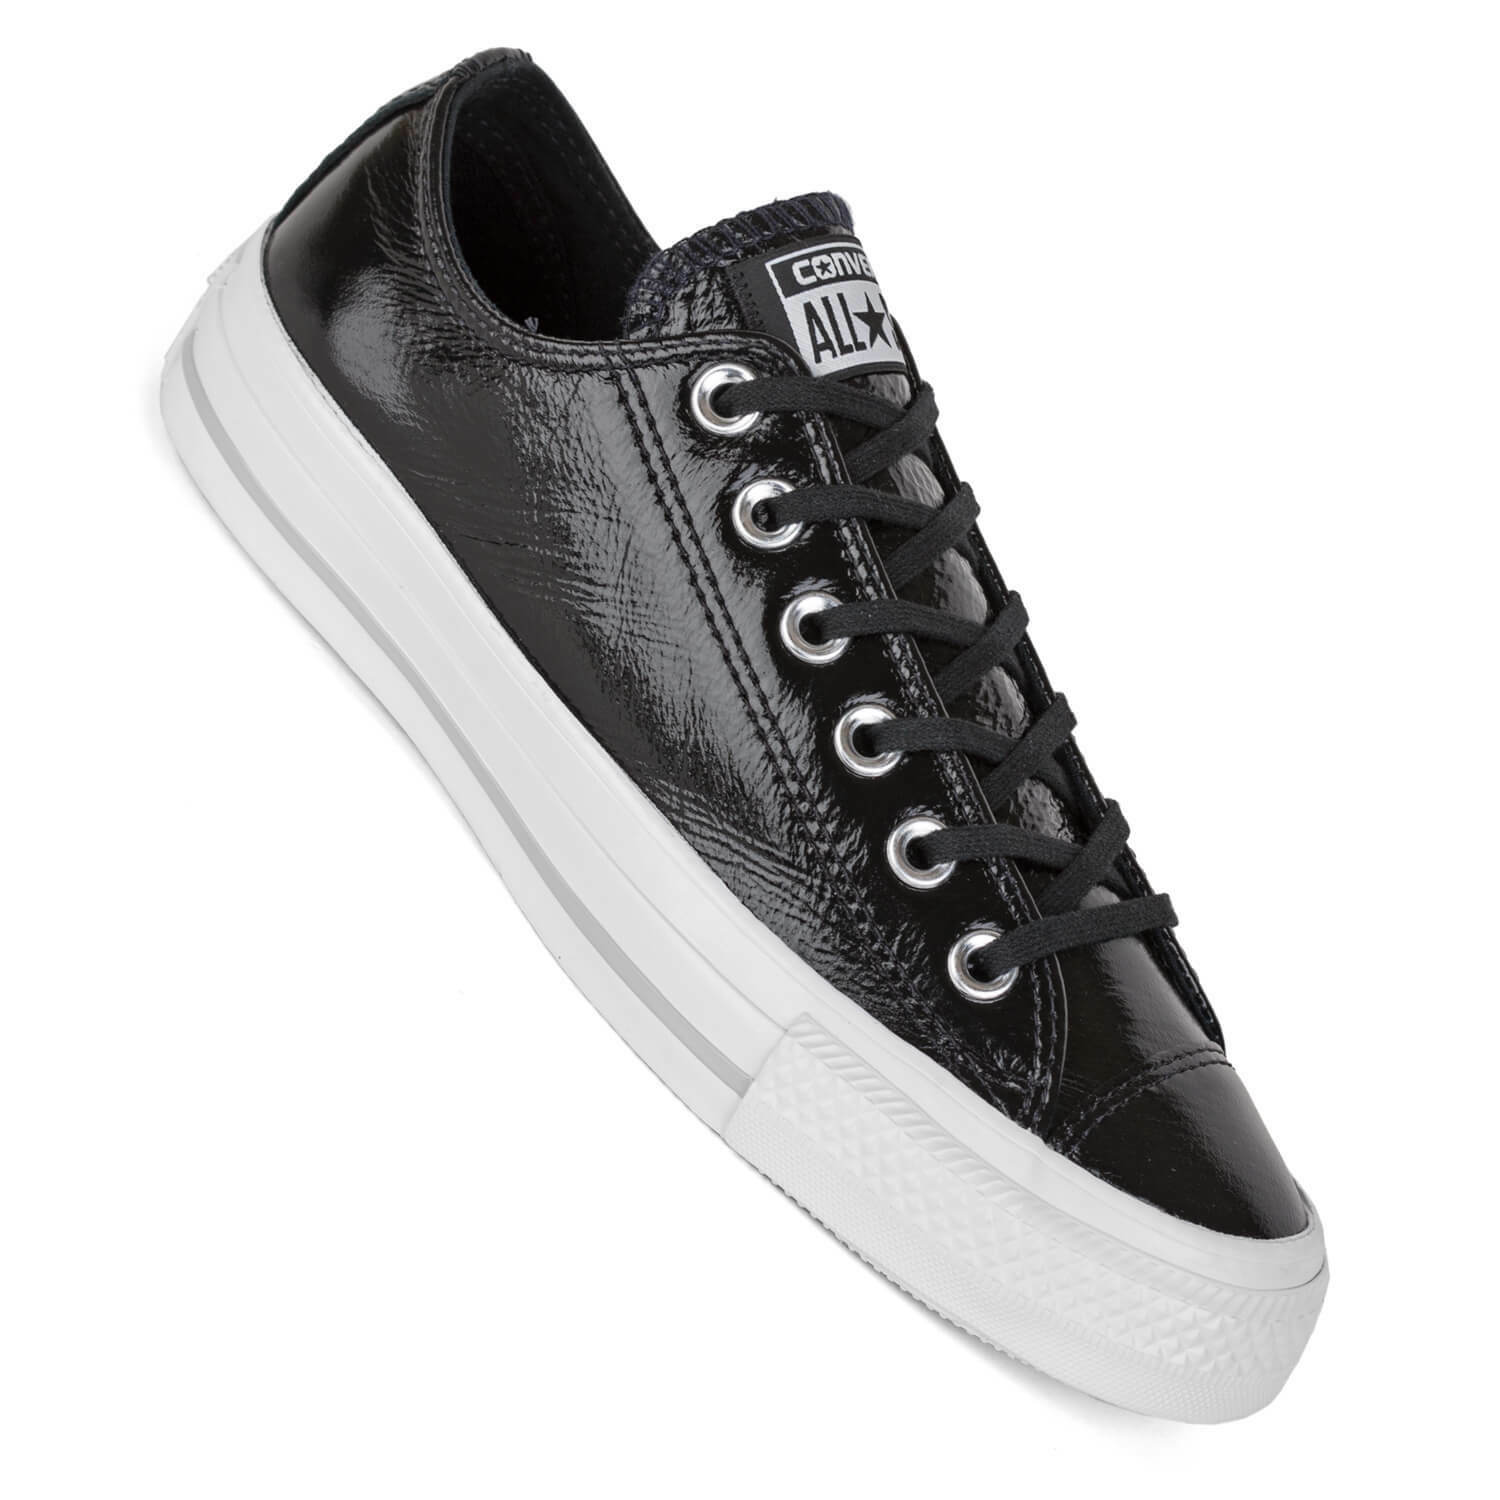 Converse señora Chuck lo negro brillante ctas Ox patente Leather 5580002c